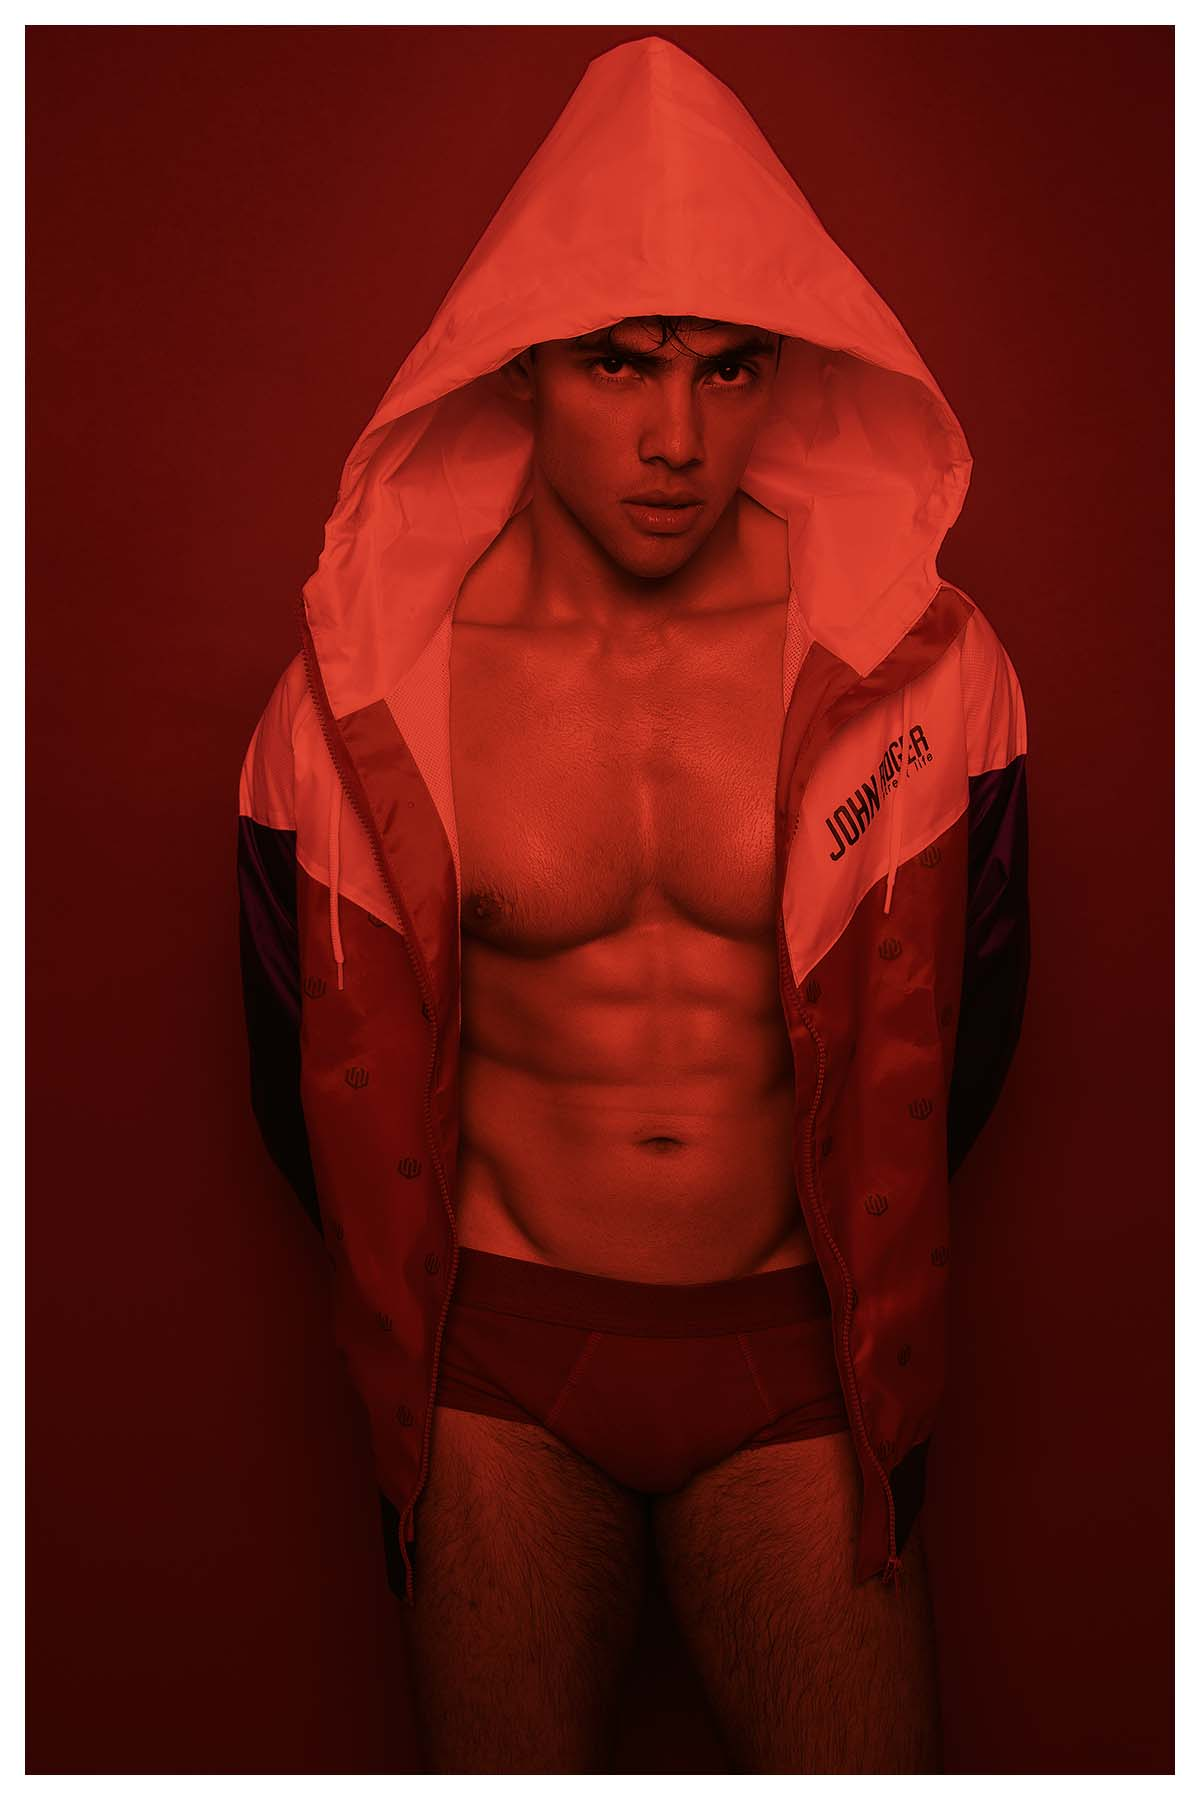 Gabriel Fuentes by David Aldea for Brazilian Male Model